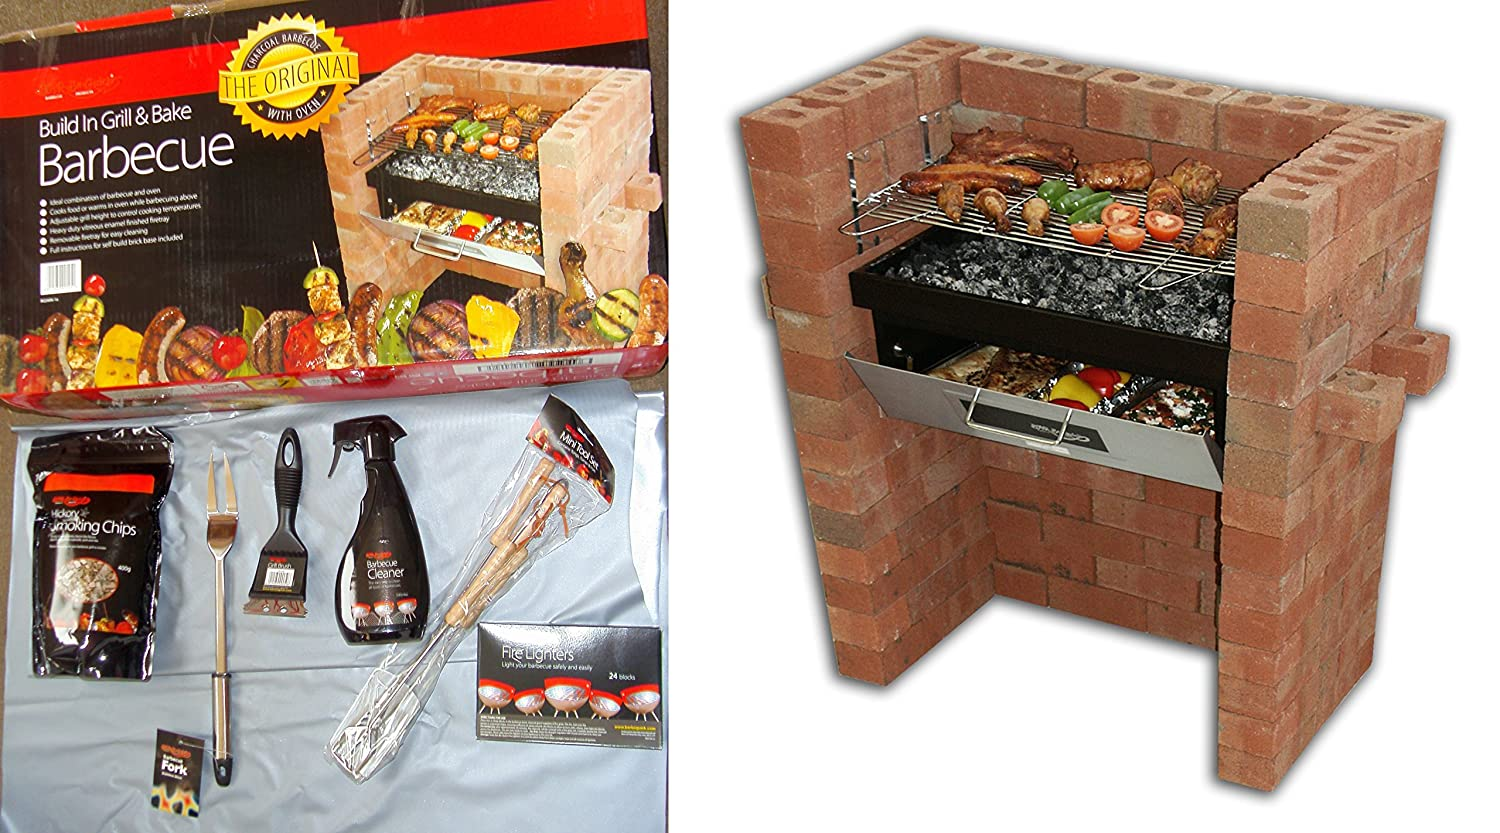 The Original Bar-Be-Quick construir en Grill & Hornear Barbacoa + Starter Pack Kit de OF- encendedores, 3 piezas Utensilios, cepillo de parrilla, ...